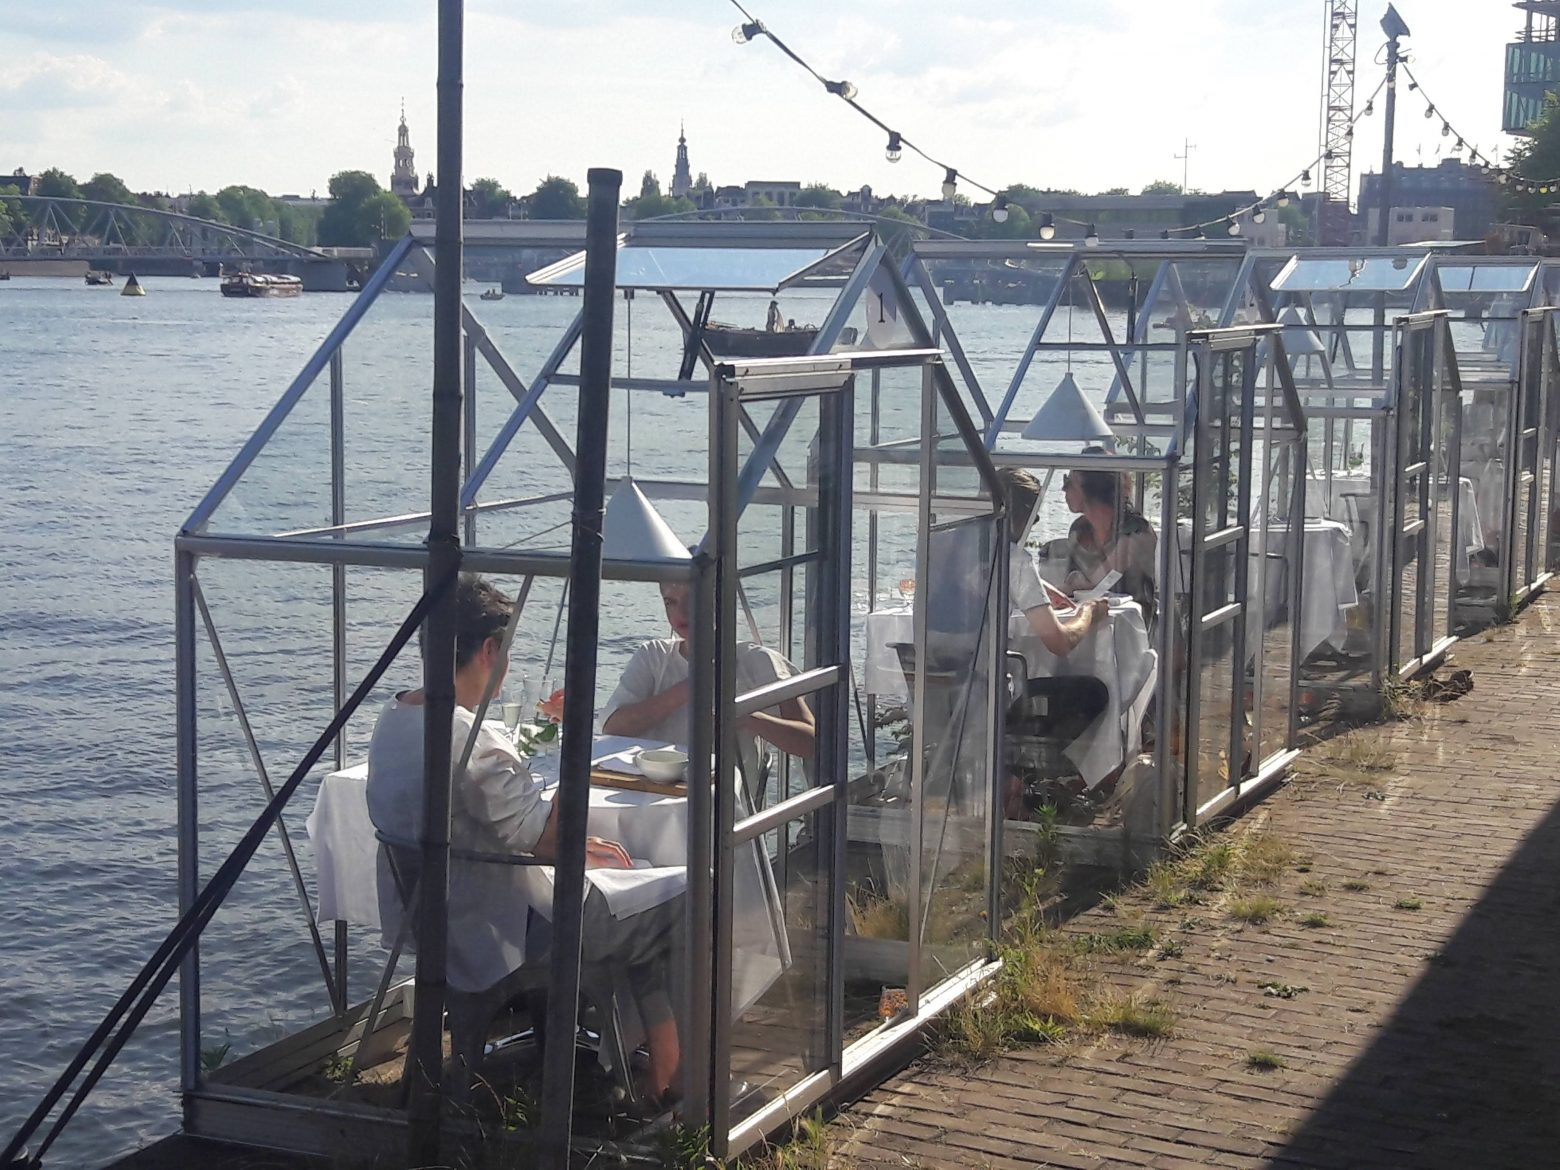 Heard about the greenhouse dining at Mediamatic ETEN?